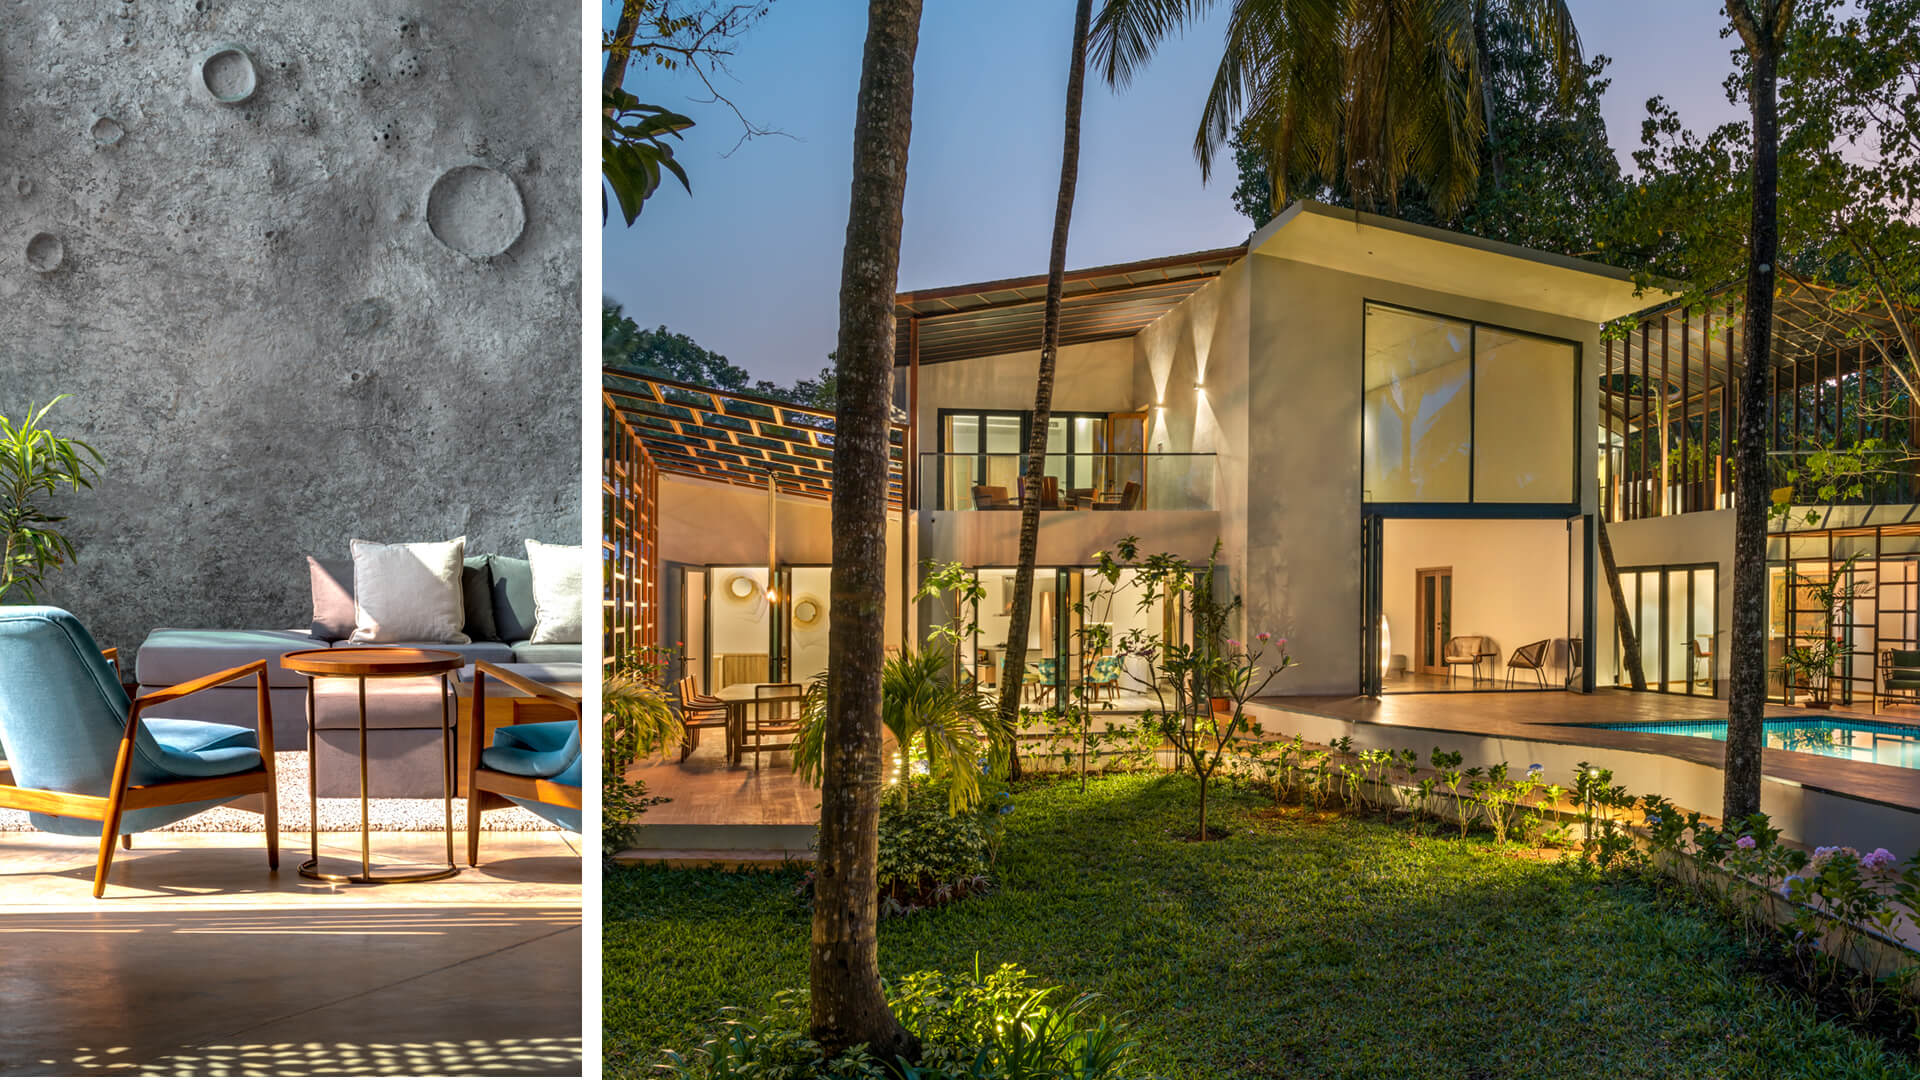 Left: Lua house's modern interiors, (right): an overview of Terra house encapsulating its outdoor-indoor fusion concept | Lua and Terra Si-oul villas by Kriss Real Estate and SAV architects | STIRworld